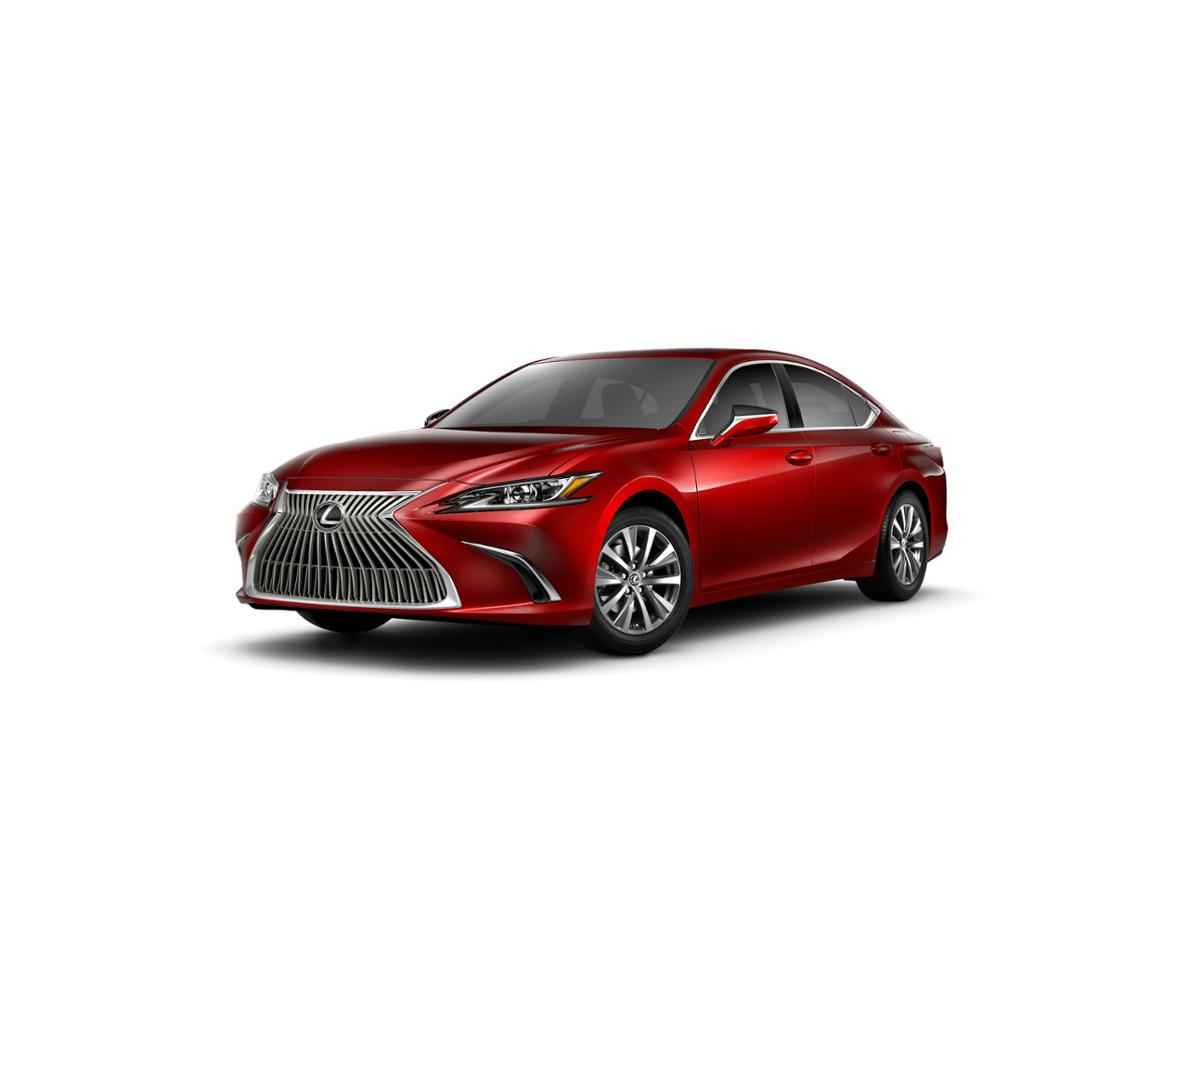 2019 Lexus Es 350 For Sale At South County Lexus In Mission Viejo